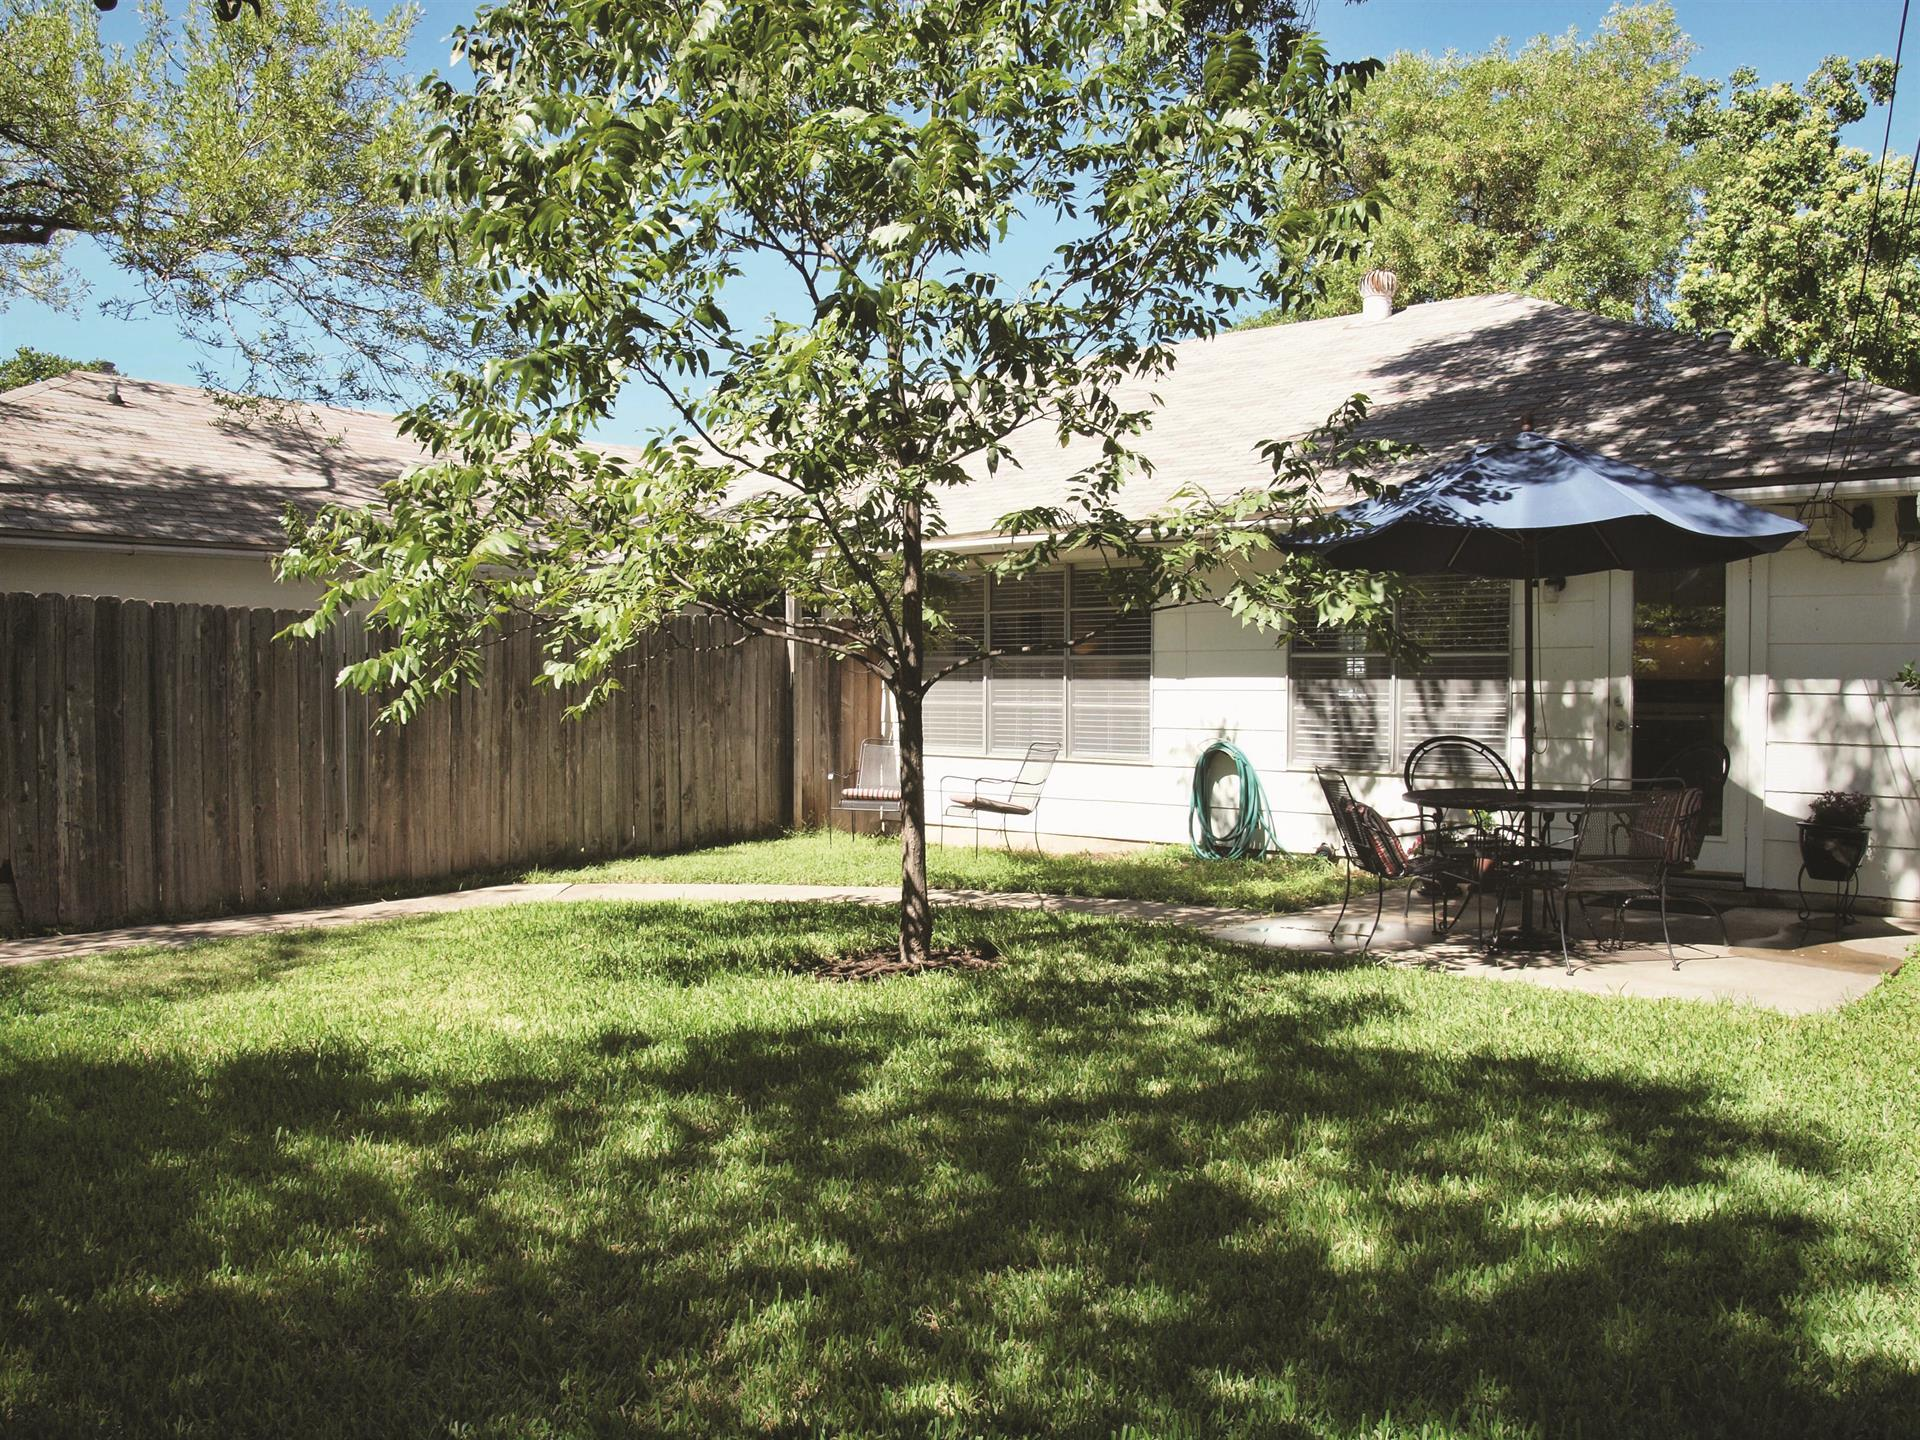 Additional photo for property listing at 2205 Teakwood Dr 2205 Teakwood Dr Austin, Texas 78757 Estados Unidos